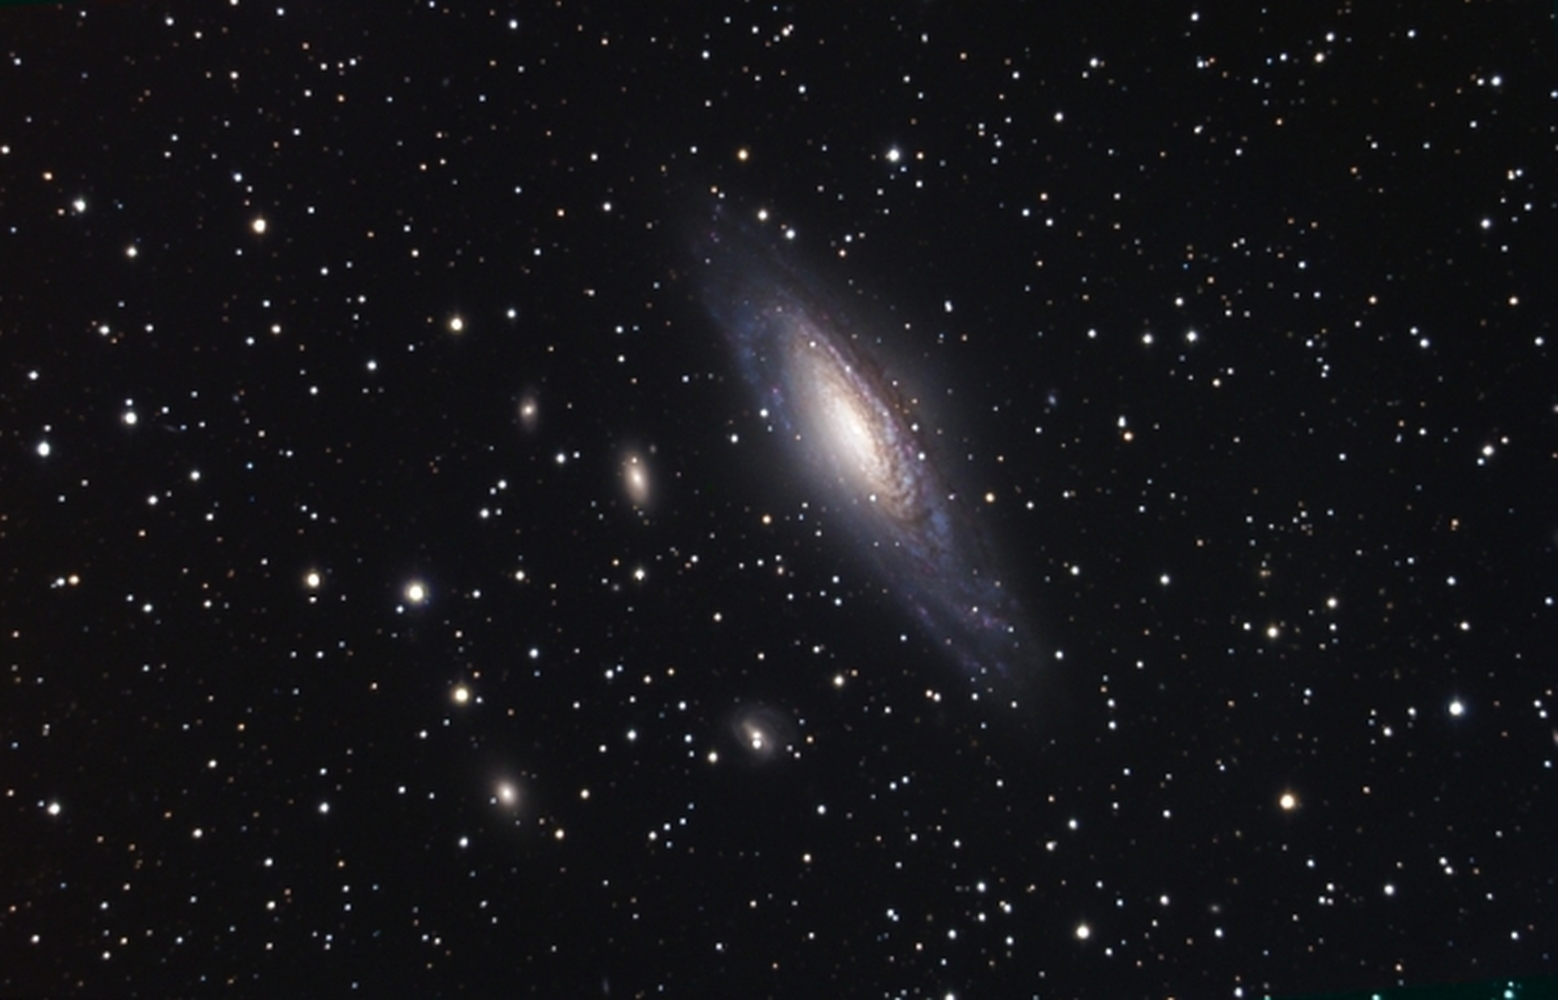 NGC 7331 from BMV Observatories